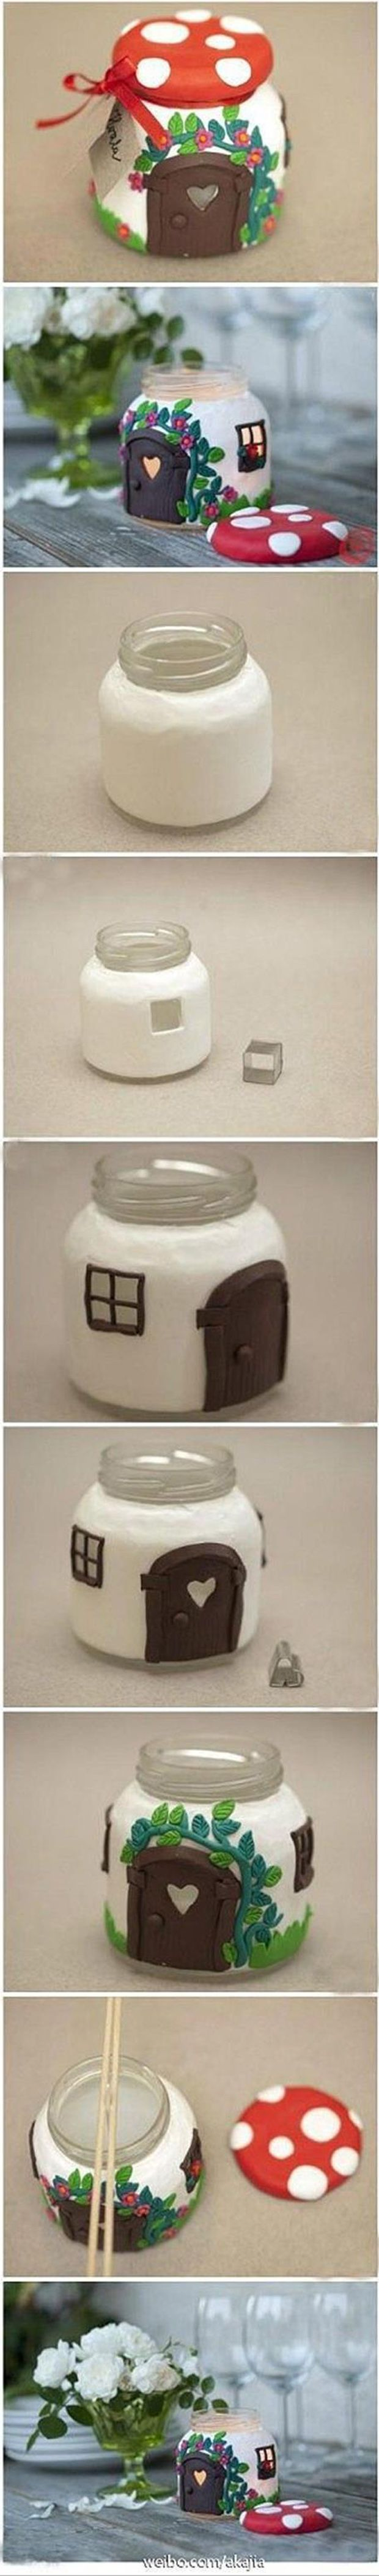 do it yourself craft ideas (11)